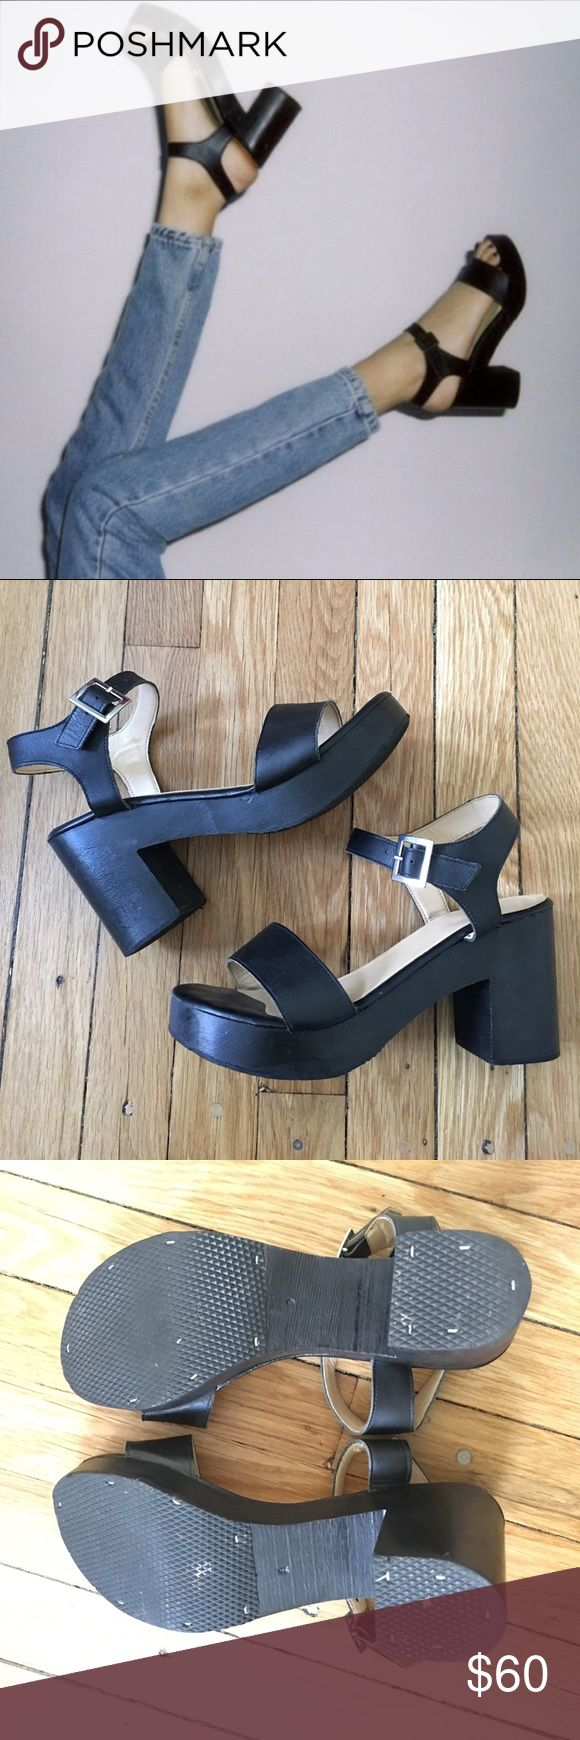 American Apparel Wooden Heels Great Condition, only used a few times.  American Apparel all black wooden heels.  Leather straps and wood platform. Size 9.  No longer made, get them while you can!!! American Apparel Shoes Heels